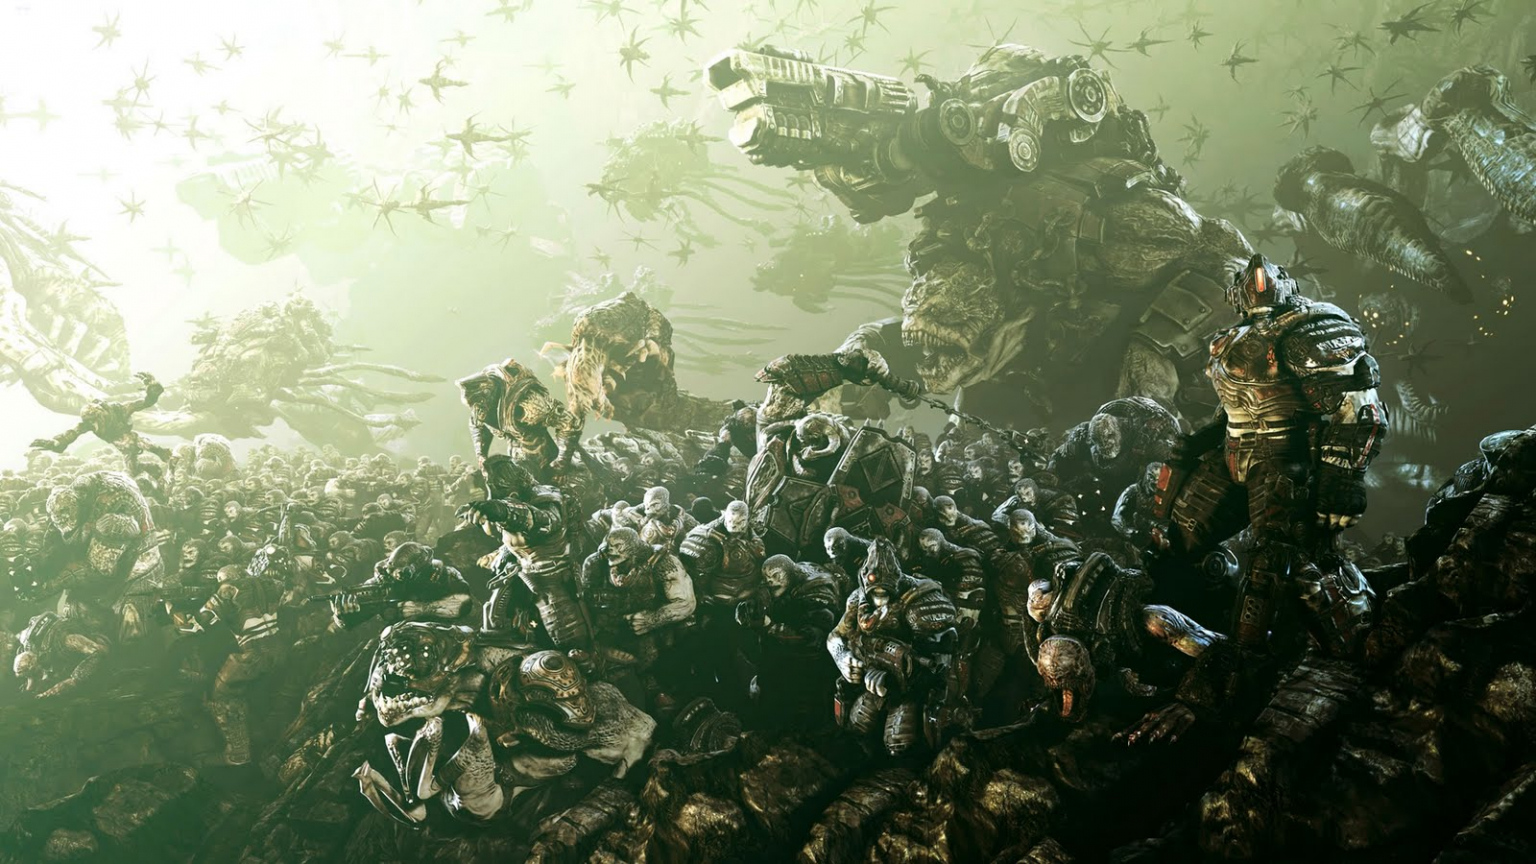 Free Download Gears Of War Locust Wallpaper 4274 Hd Wallpapers In